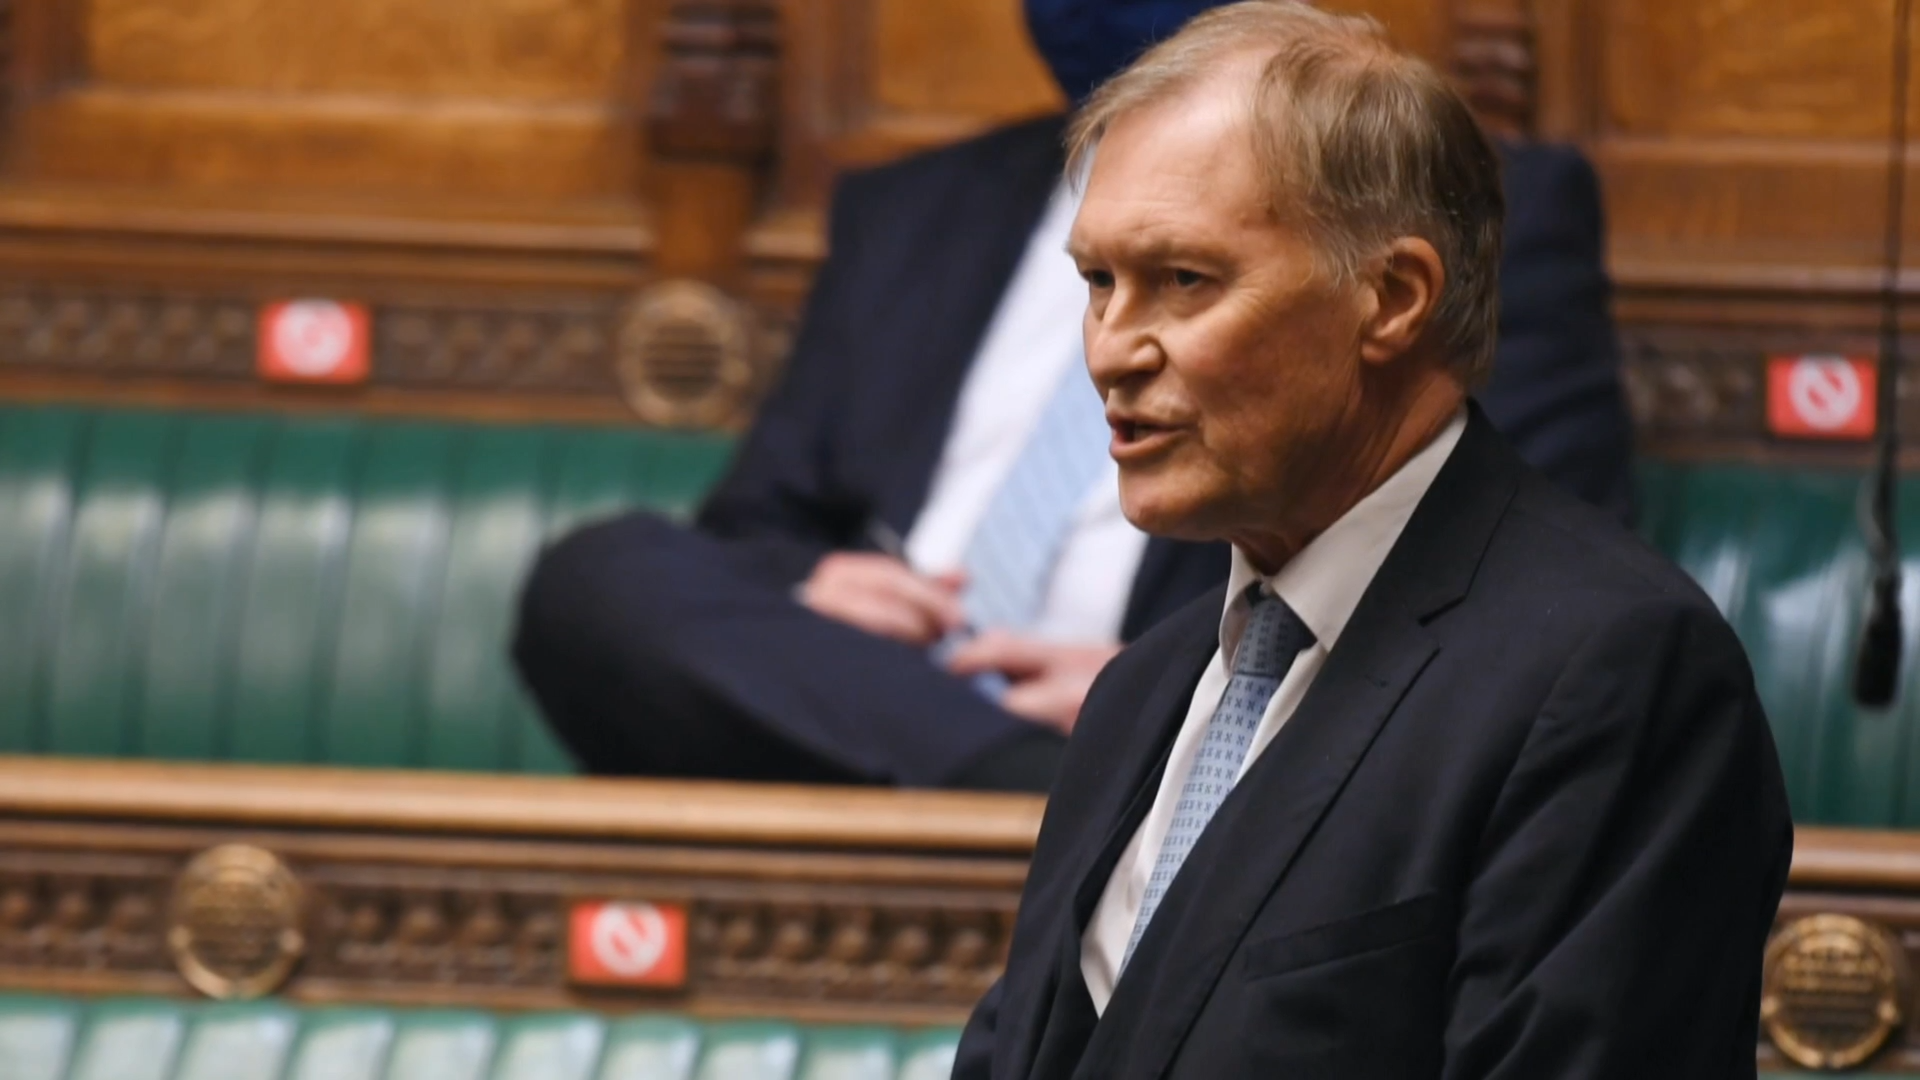 Conservative MP Sir David Amess dies after stabbing in constituency - channel 4